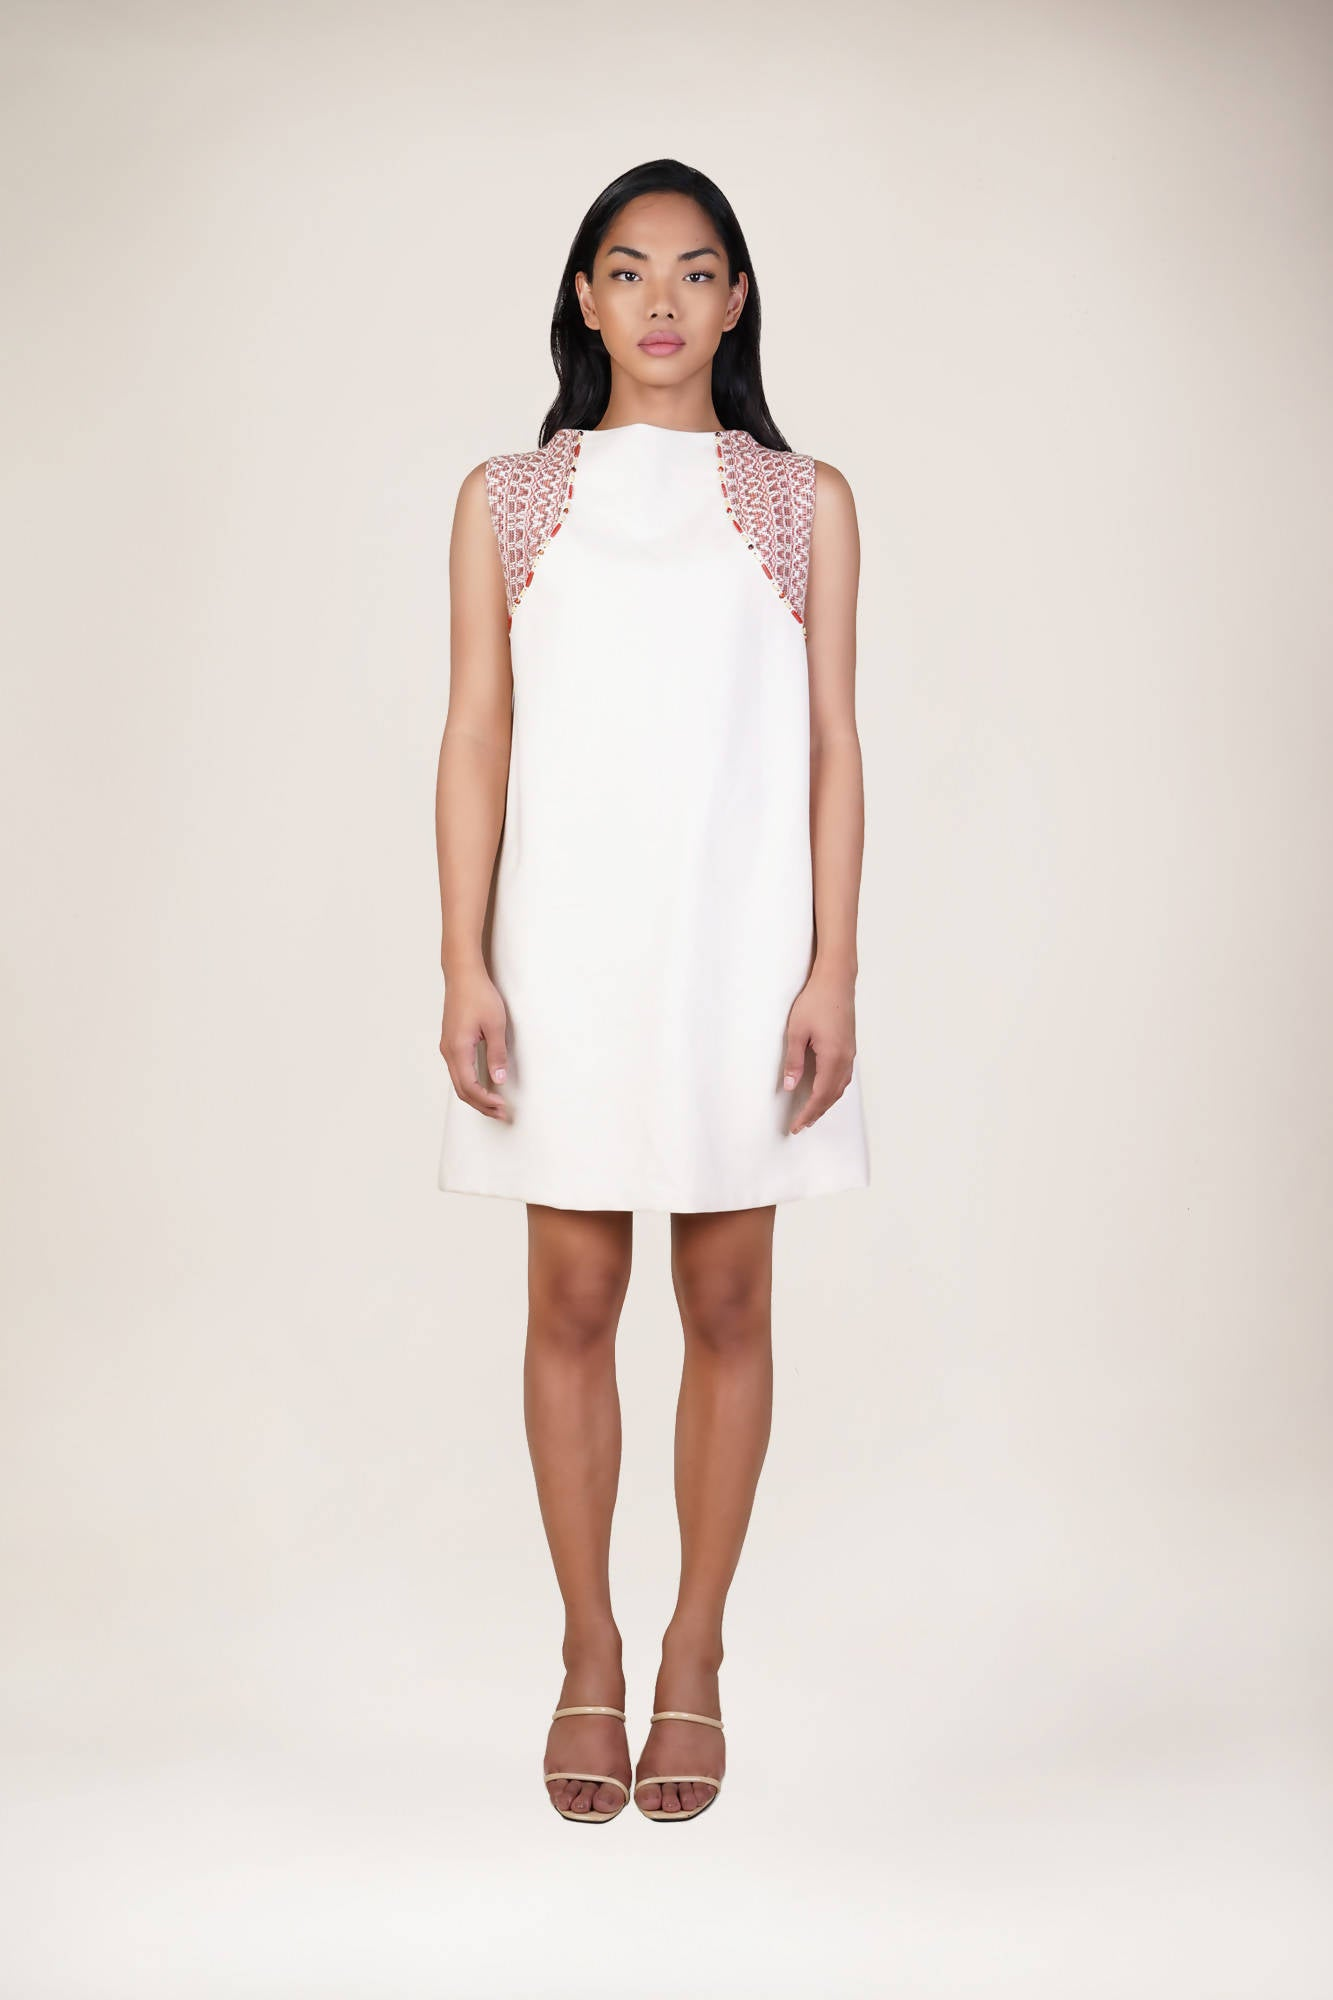 Diwata Sleeveless A-Line Dress in White/Rust